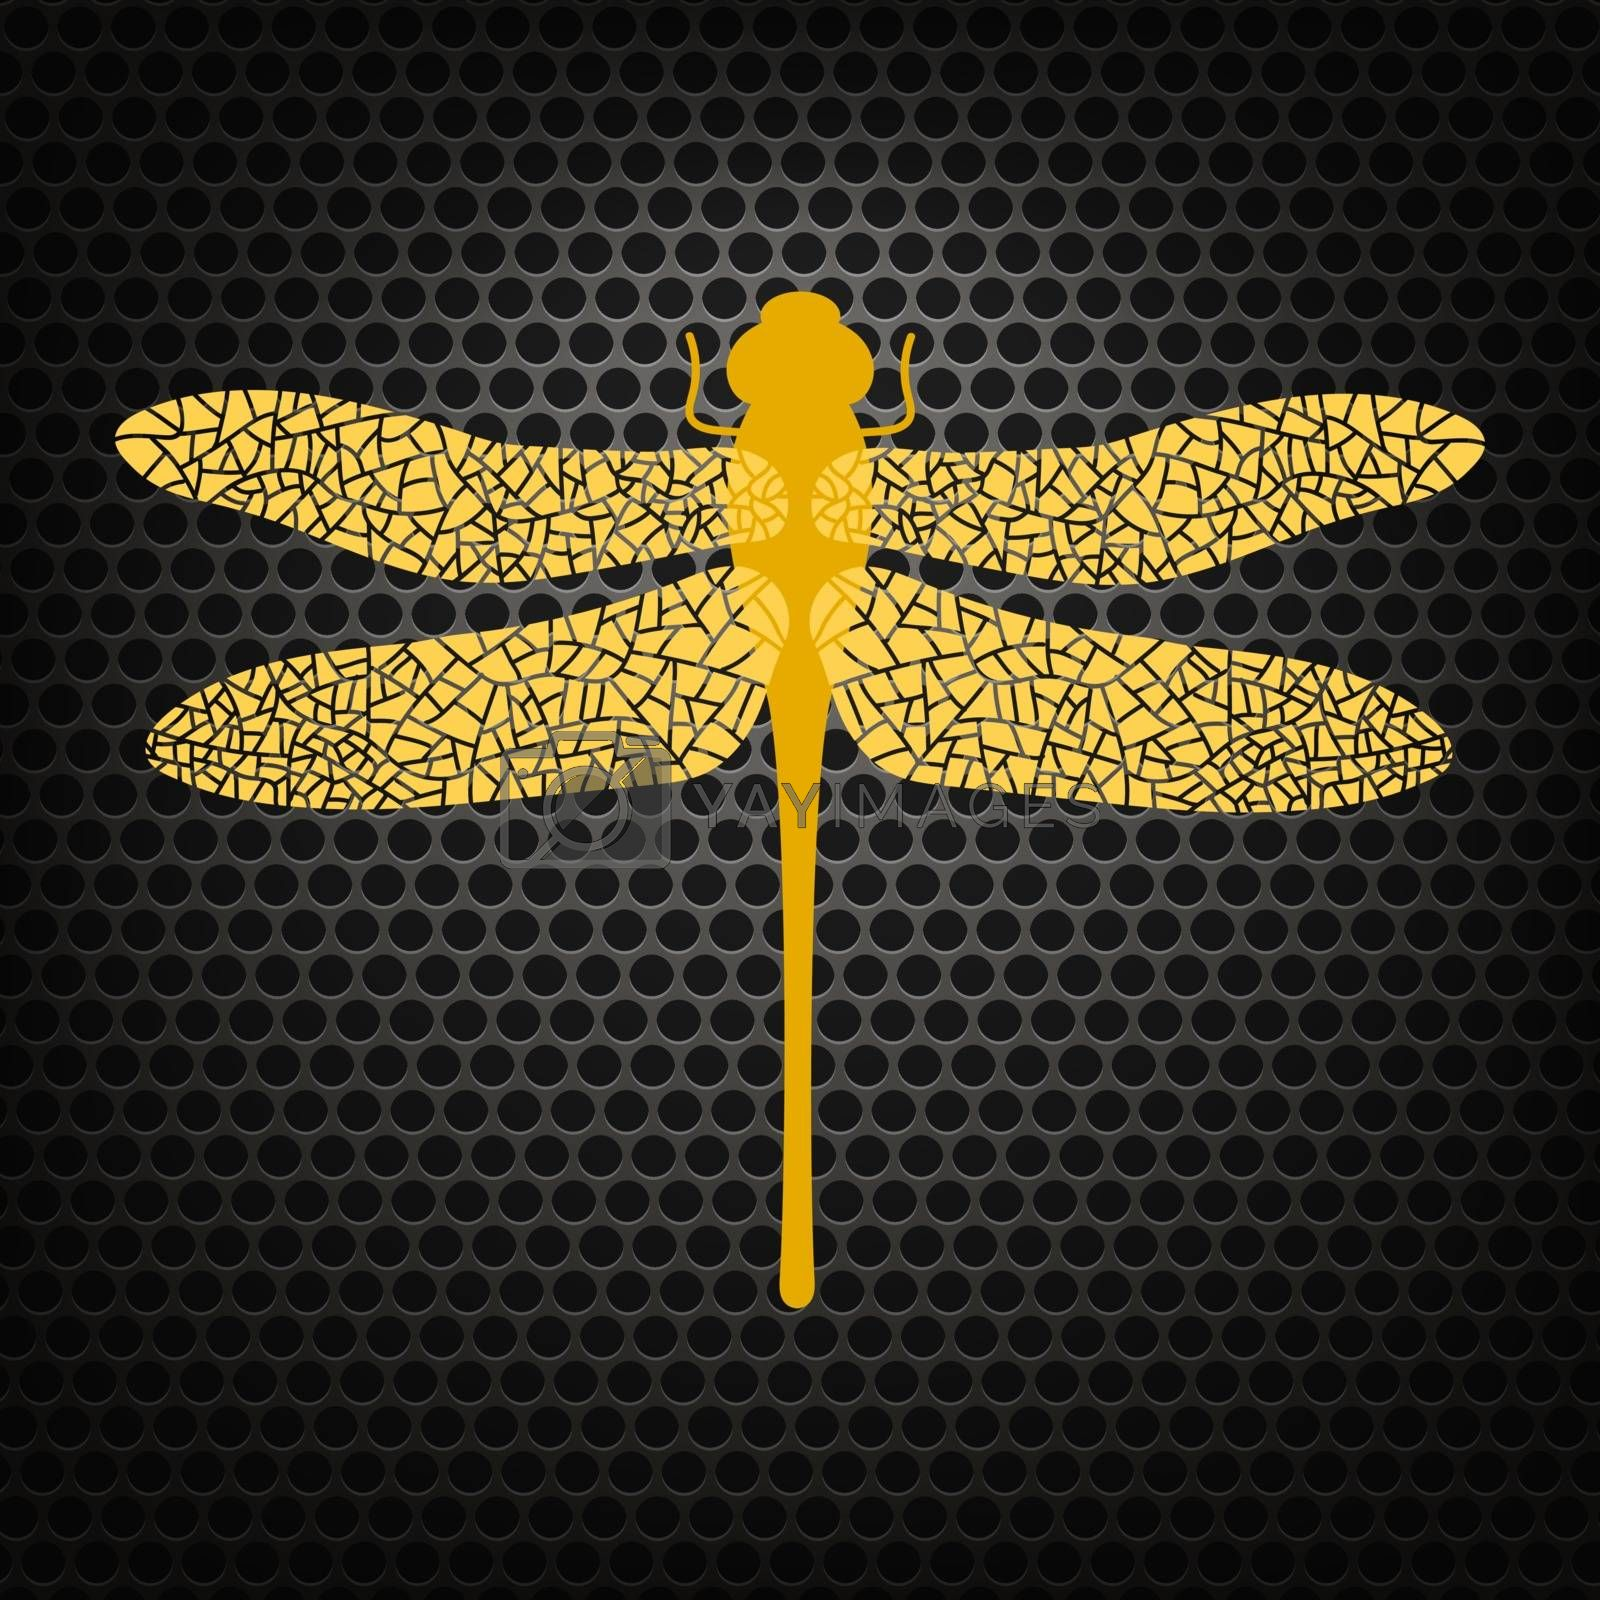 Colored Stilized Dragonfly Isolated on Perforated Background. Insect Logo Design. Aeschna Viridis